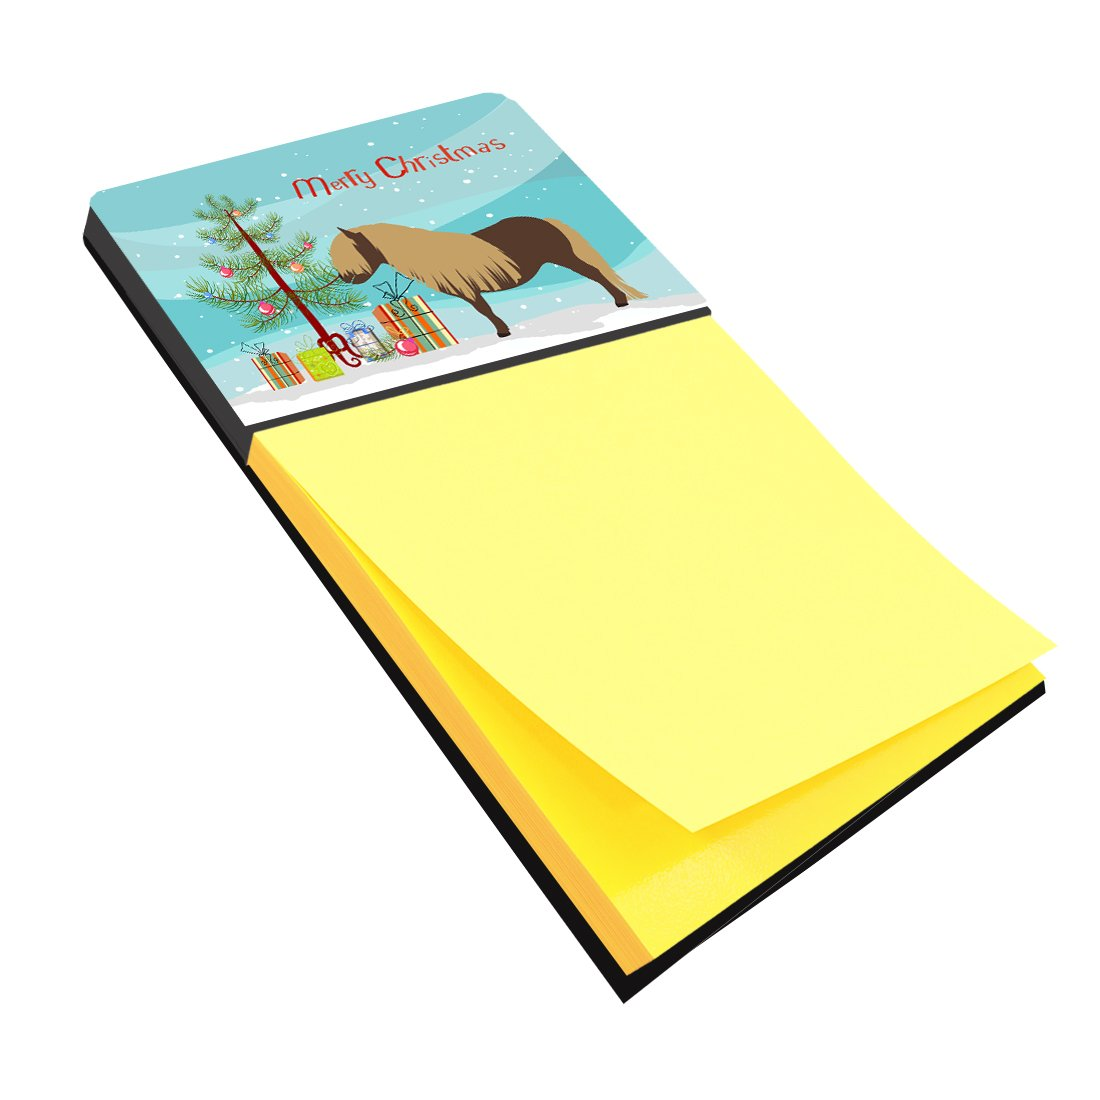 Shetland Pony Horse Christmas Sticky Note Holder BB9281SN by Caroline's Treasures